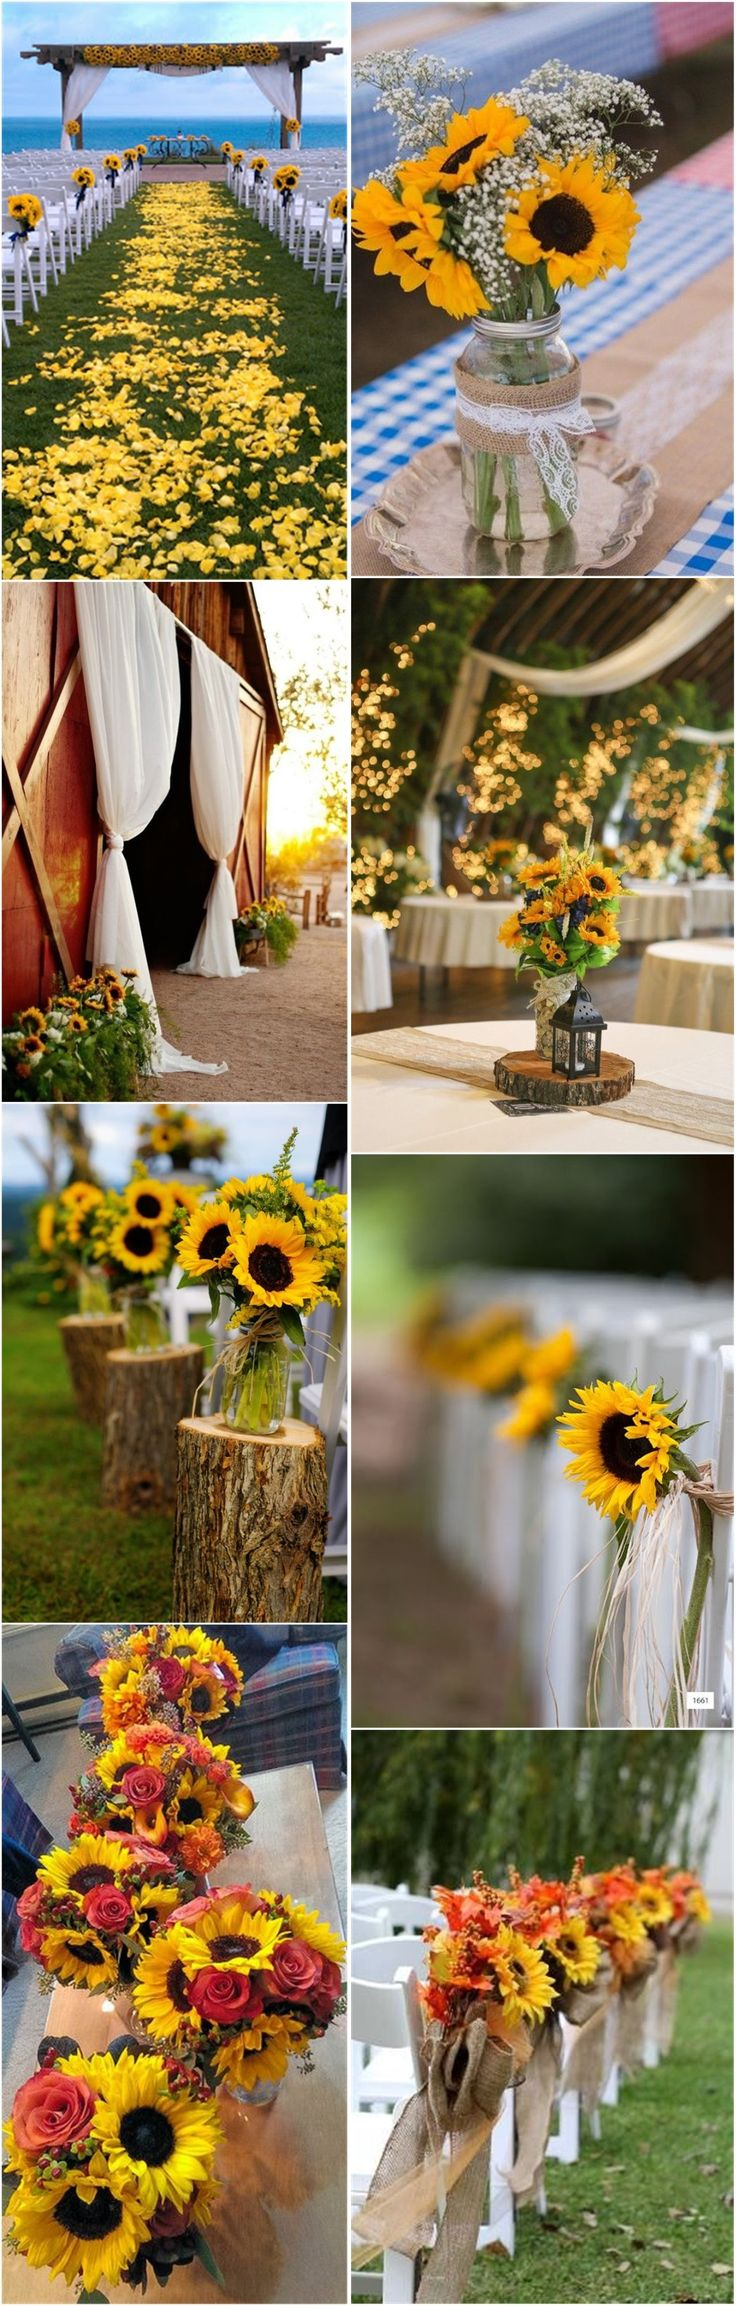 149 Best Theme Sunflower Wedding Images On Pinterest Sunflowers